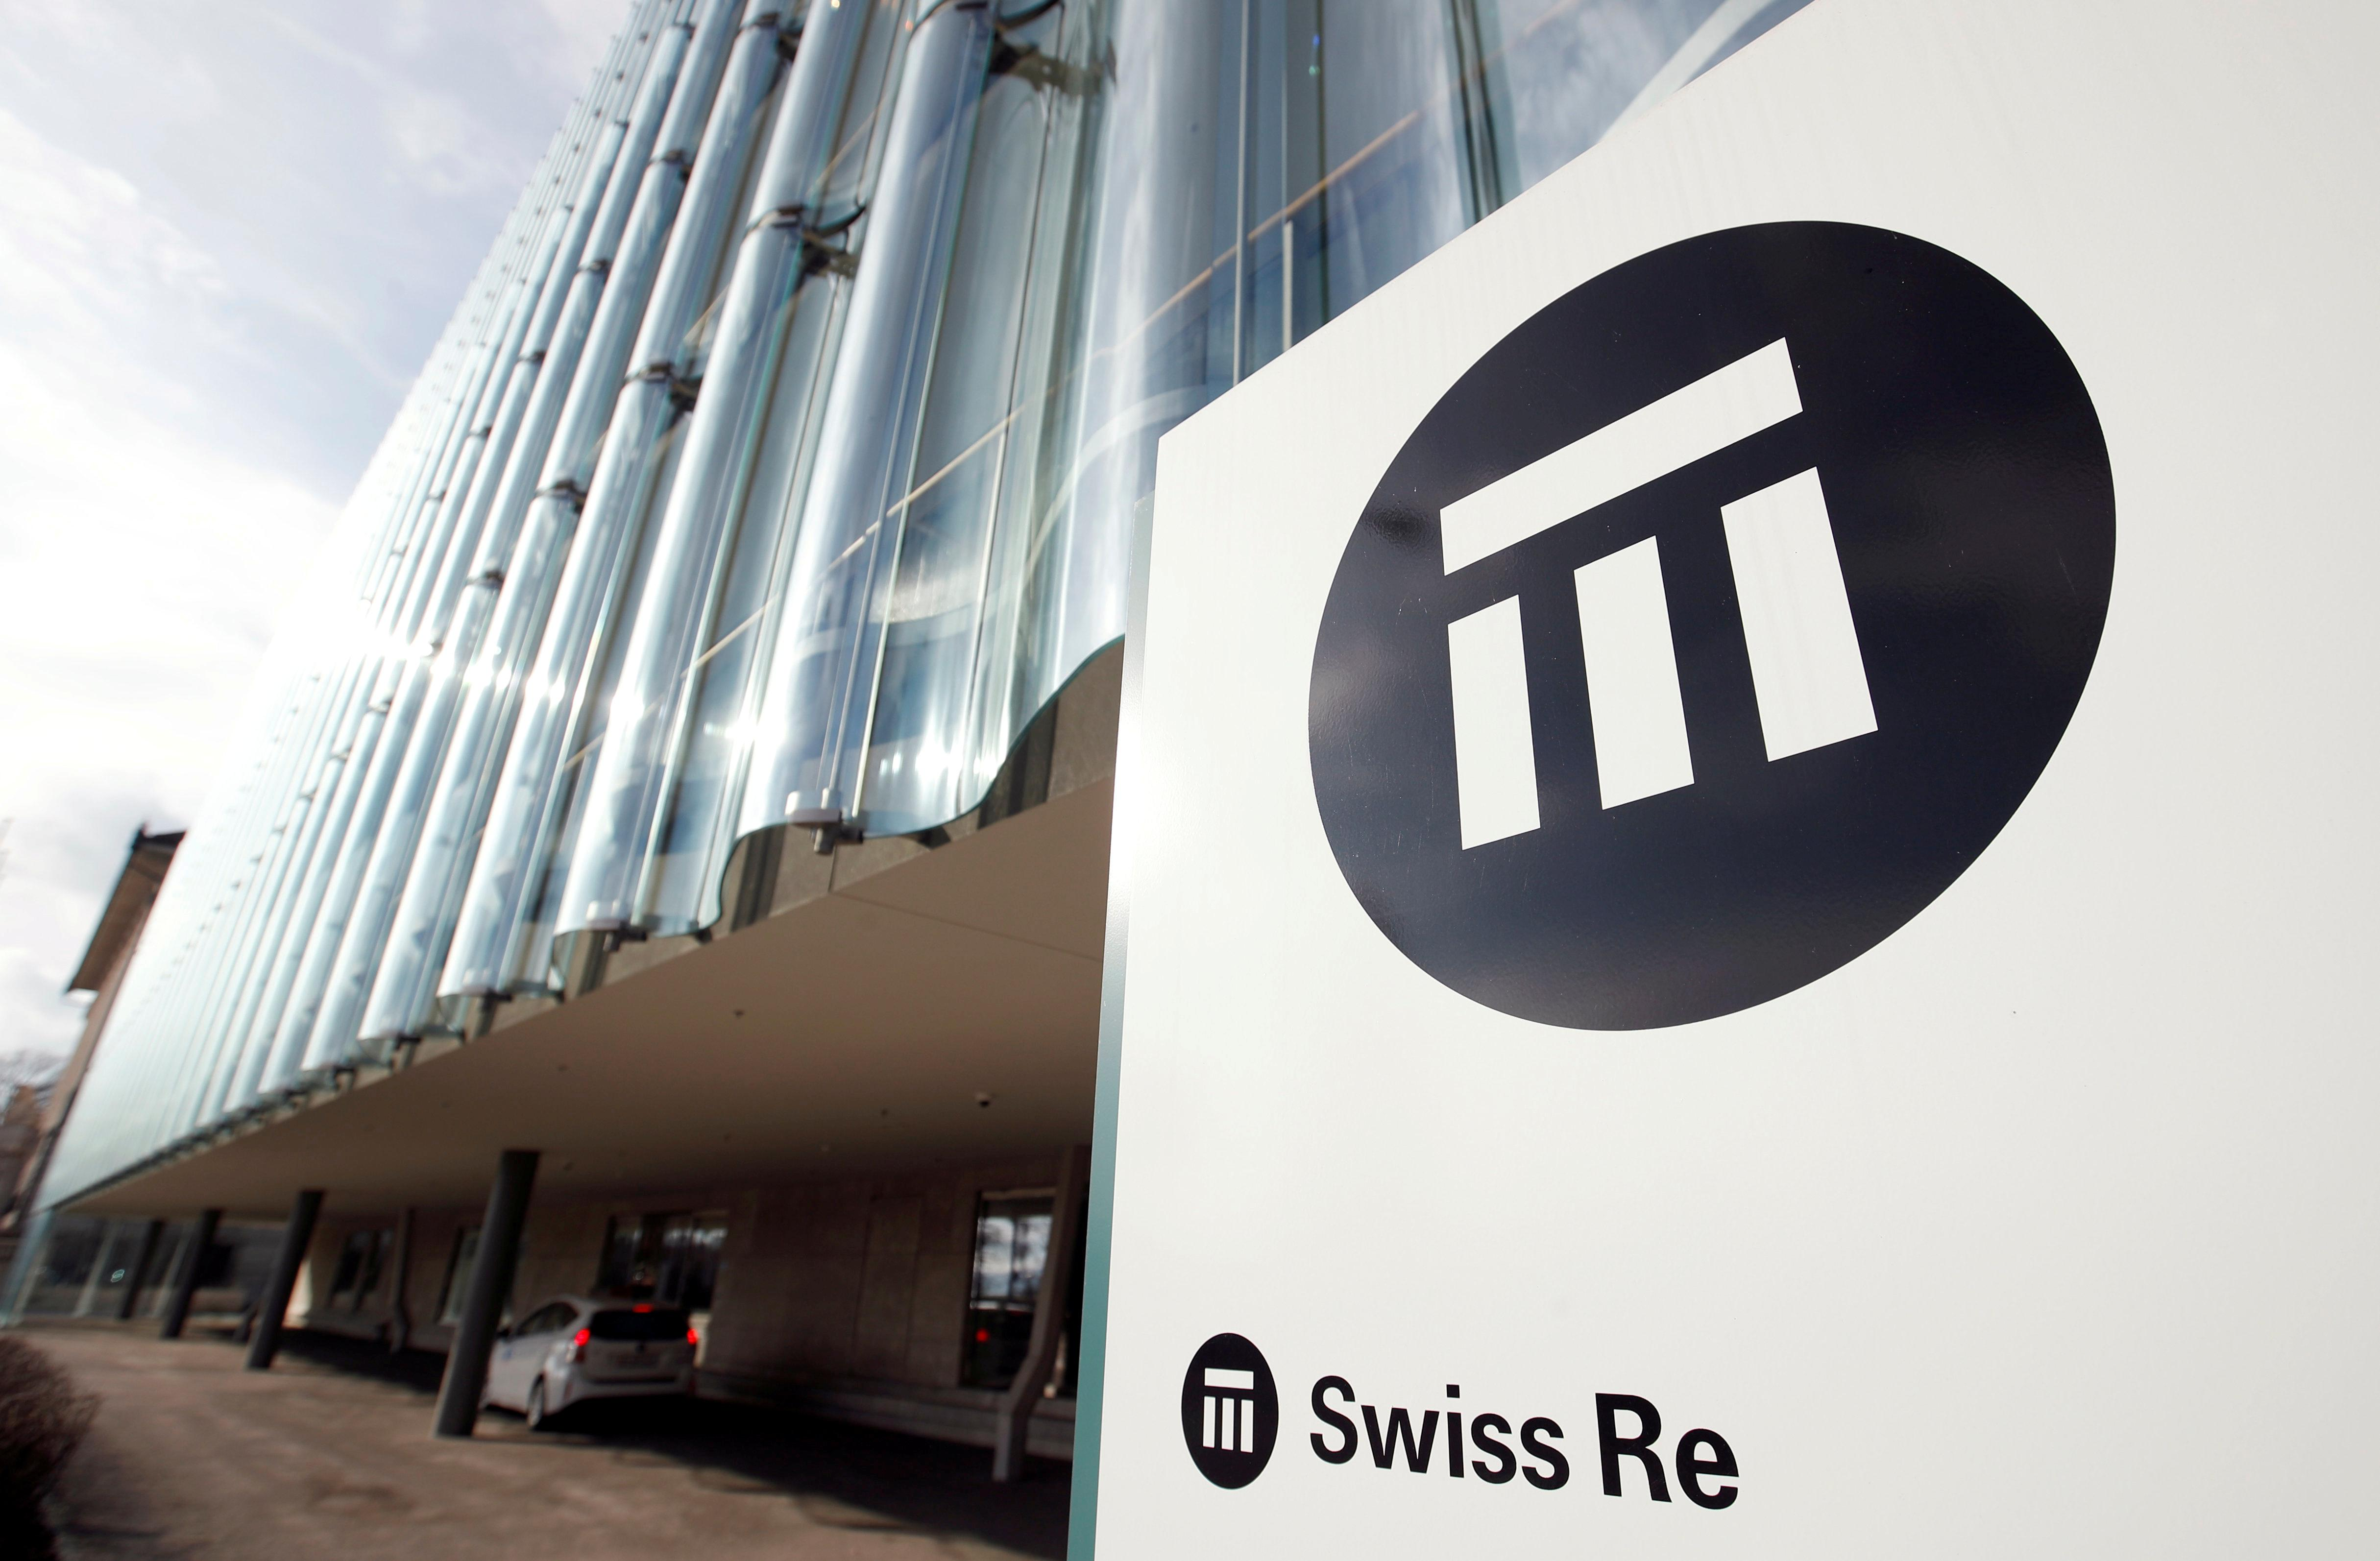 Swiss Re's ReAssure valued at up to $4.2 billion in IPO